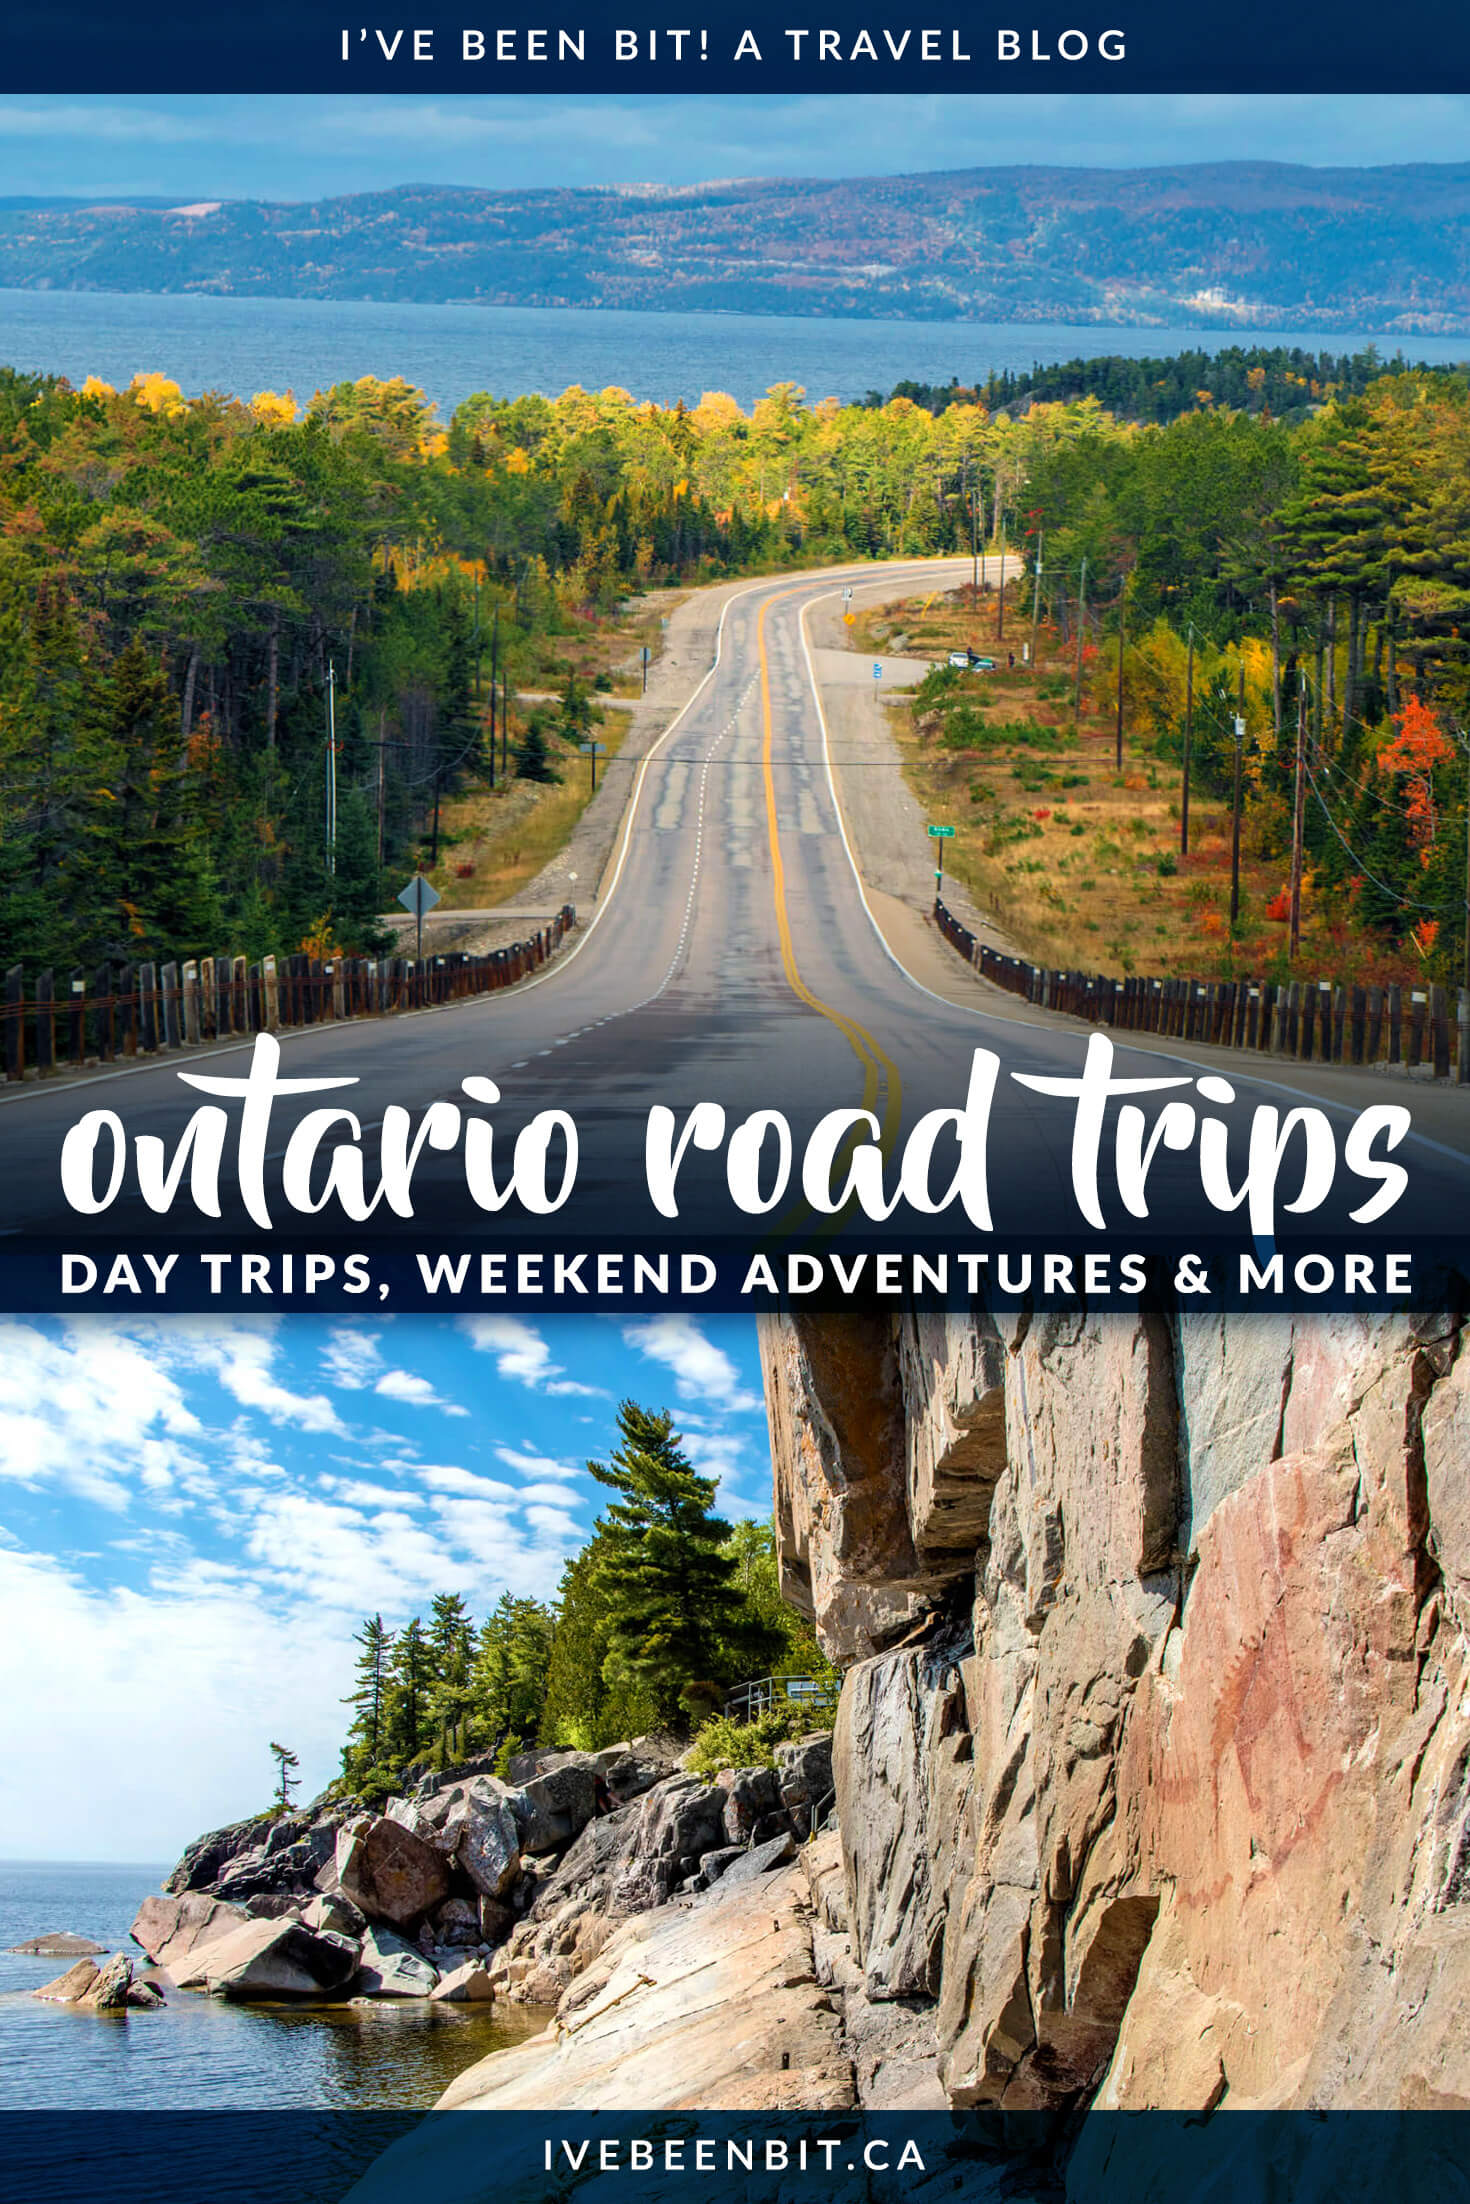 There are so many amazing places to go on a road trip in Ontario. With incredible natural wonders, family fun, wine tasting and more, there's so much to see in Ontario. Whether you're looking for day trips from Toronto, weekend adventures or longer excursions, these are the best Ontario road trips you have to experience! | #Travel #Canada #Ontario #RoadTrip #Toronto | IveBeenBit.ca